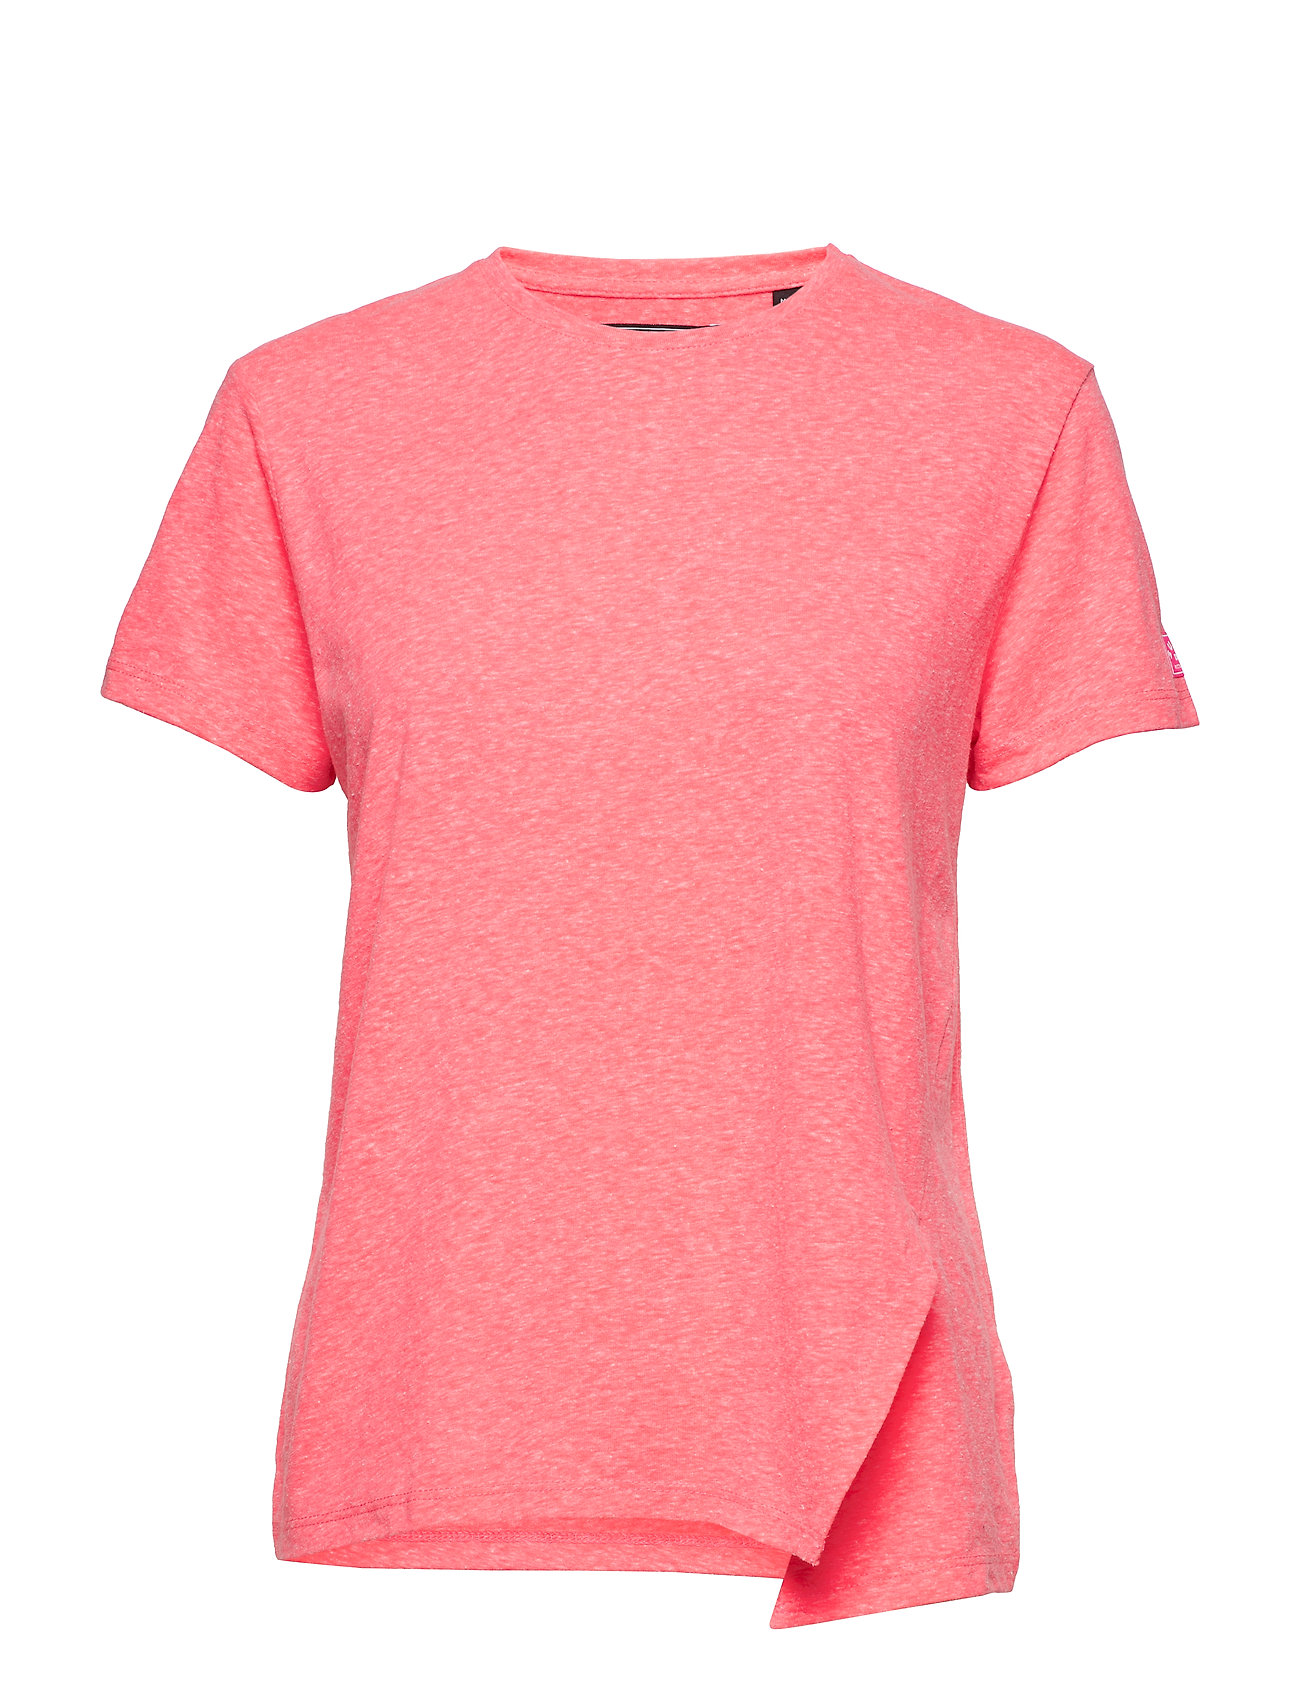 Superdry KNOT BURNOUT TEE - FLURO PINK